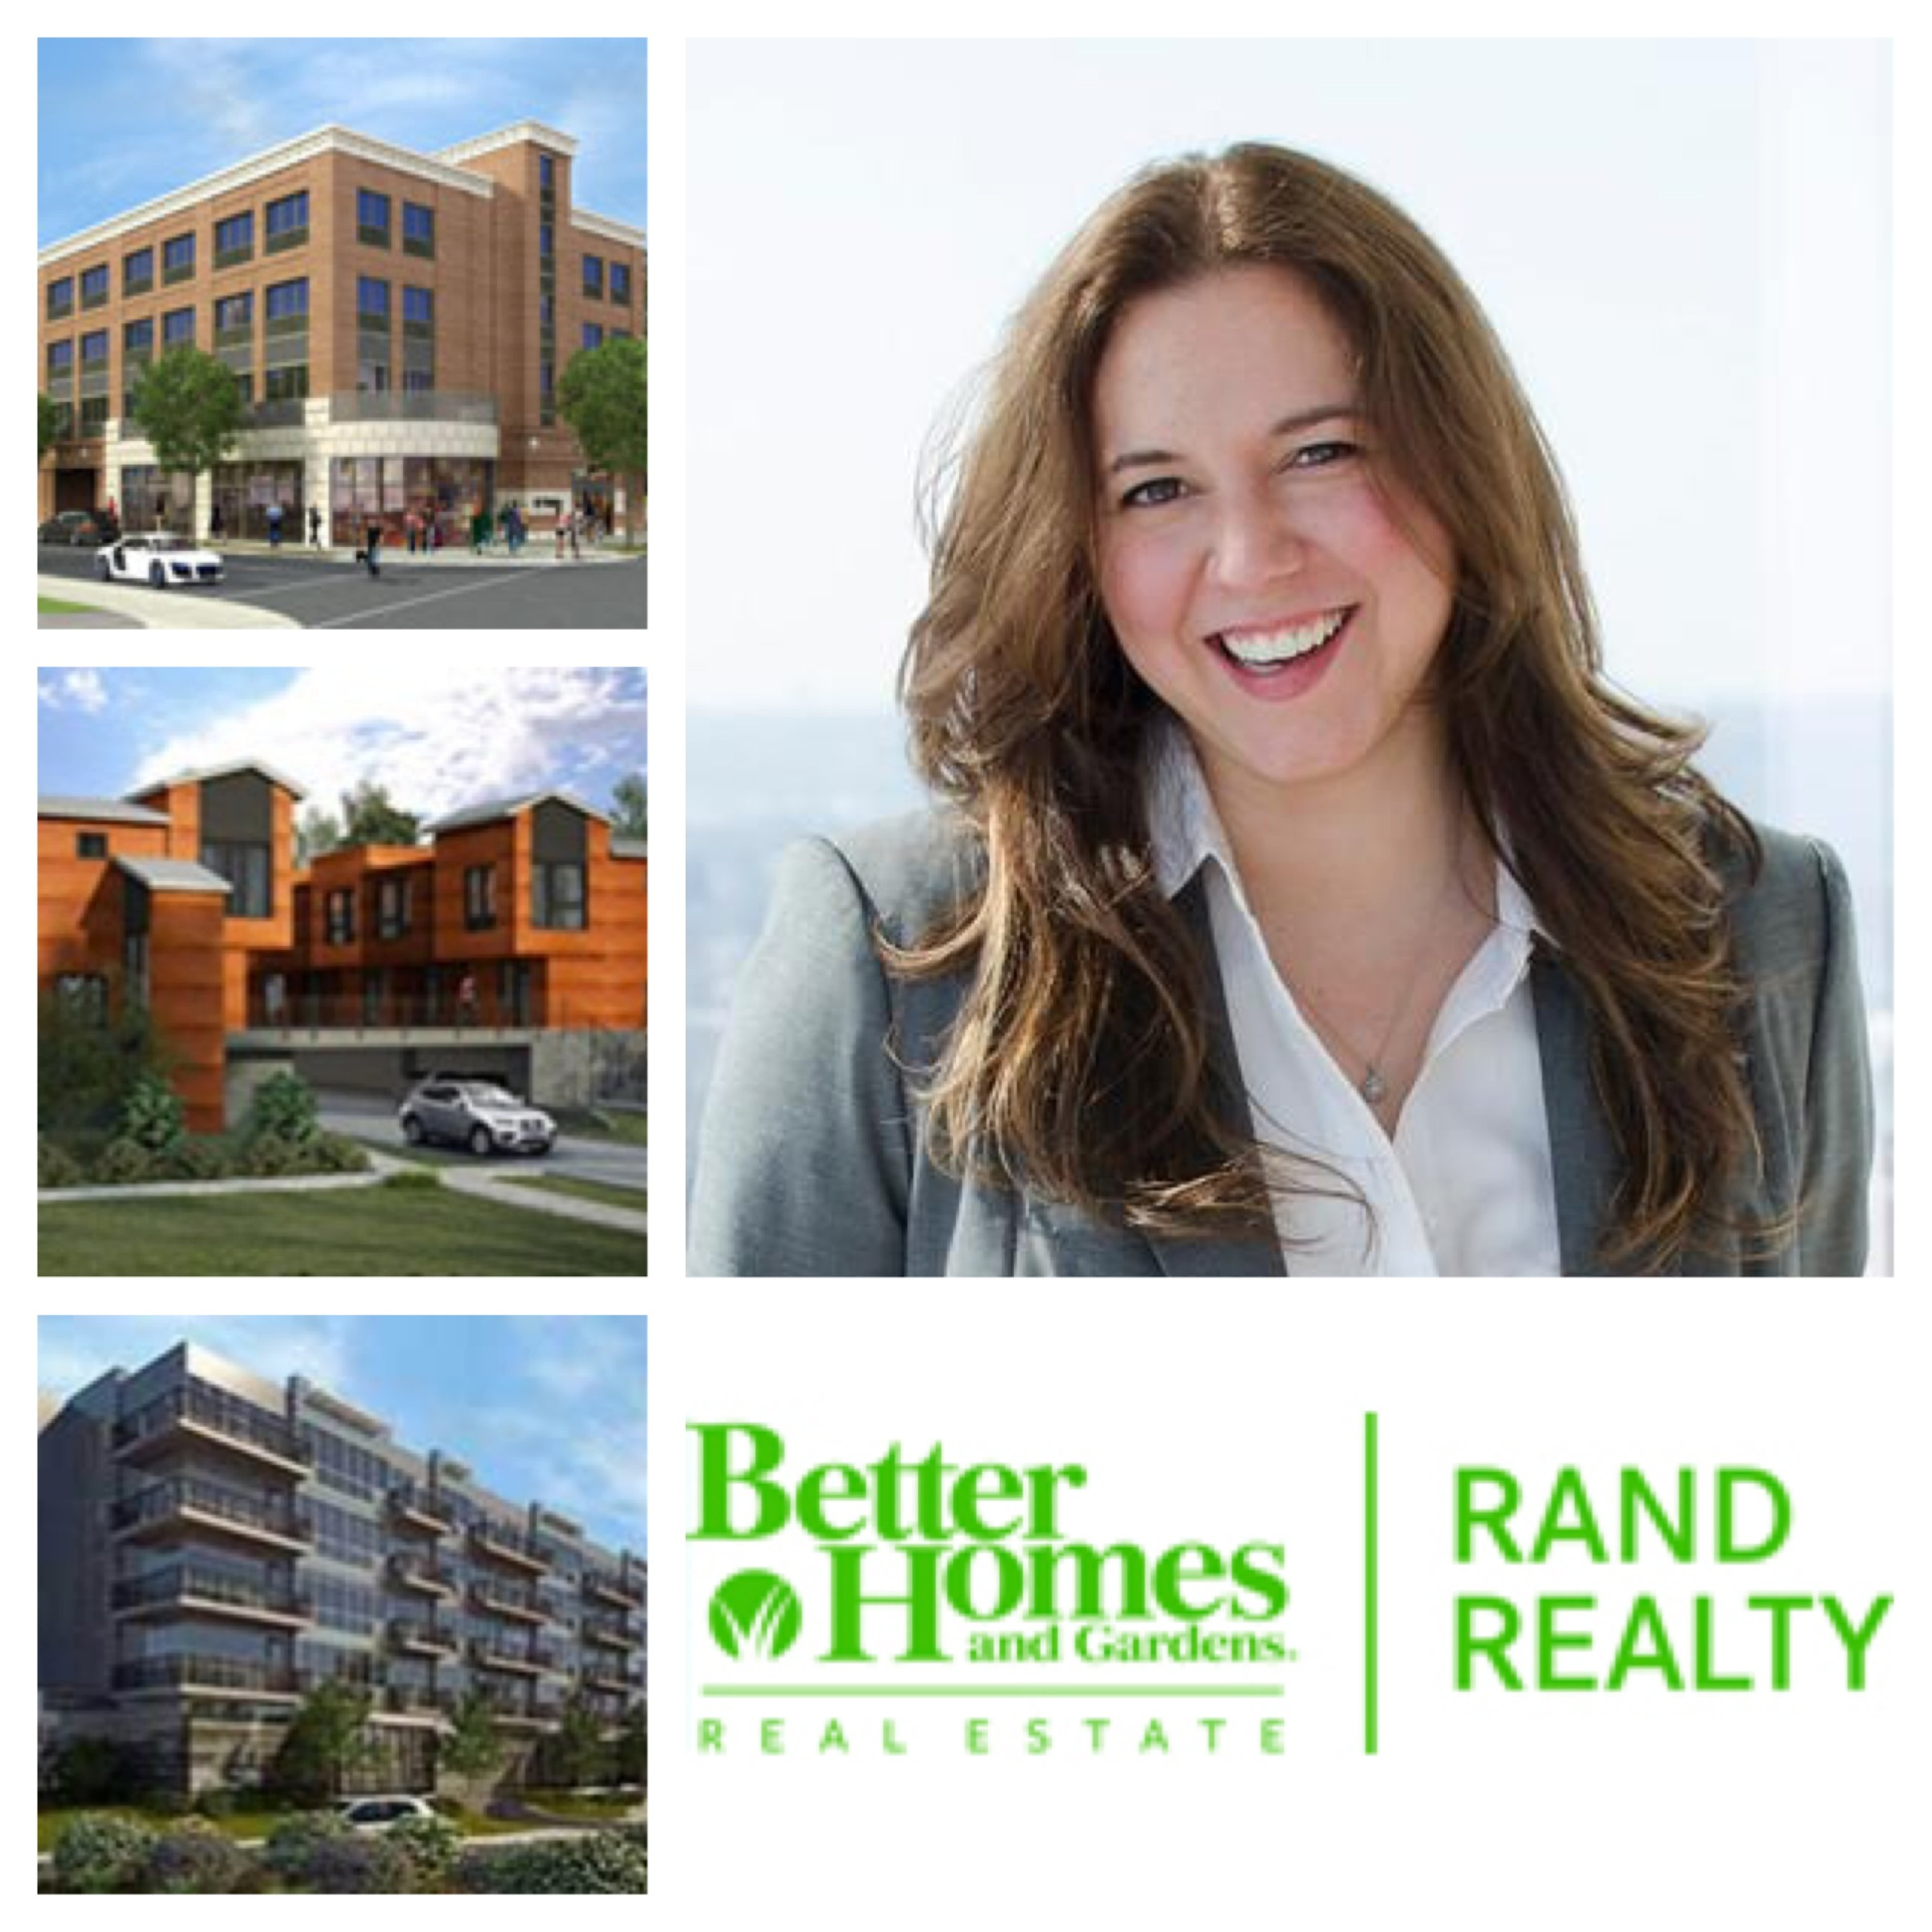 Better Homes And Gardens Rand Realty Announces Exclusive